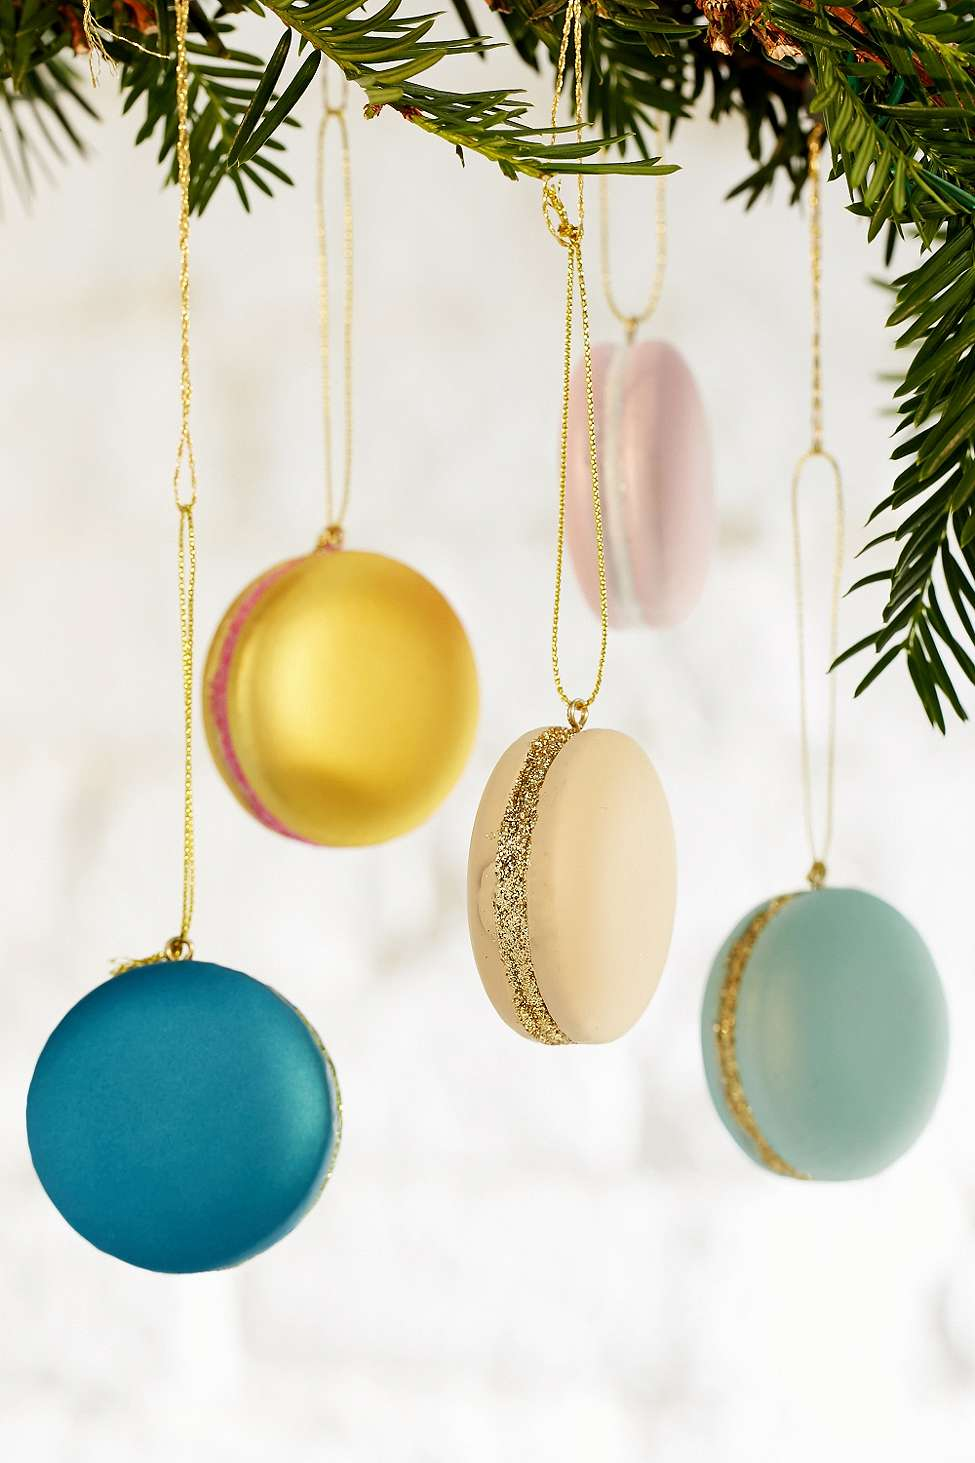 decoration-macarons-sapin_de_noel-01